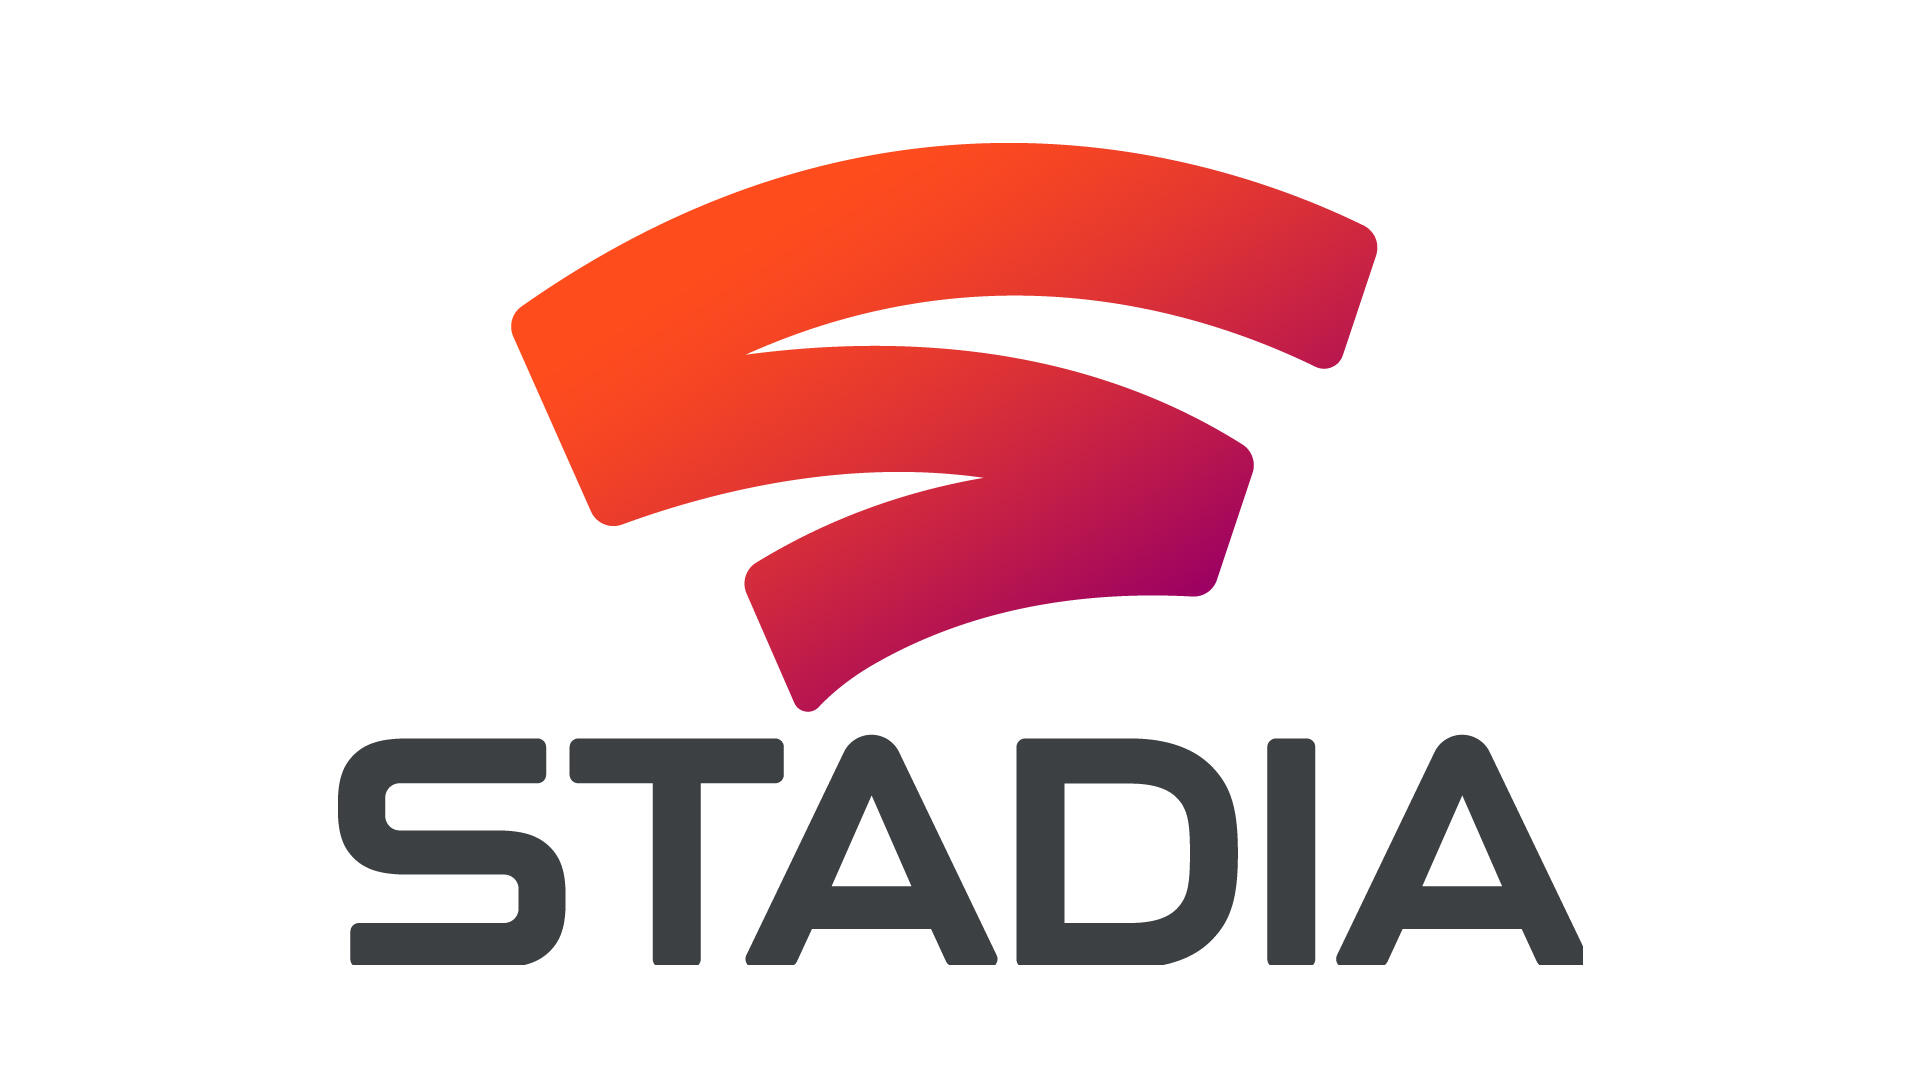 Google's Stadia Claim: If You Can Run 4K YouTube Videos, You Can Run 4K Stadia Games